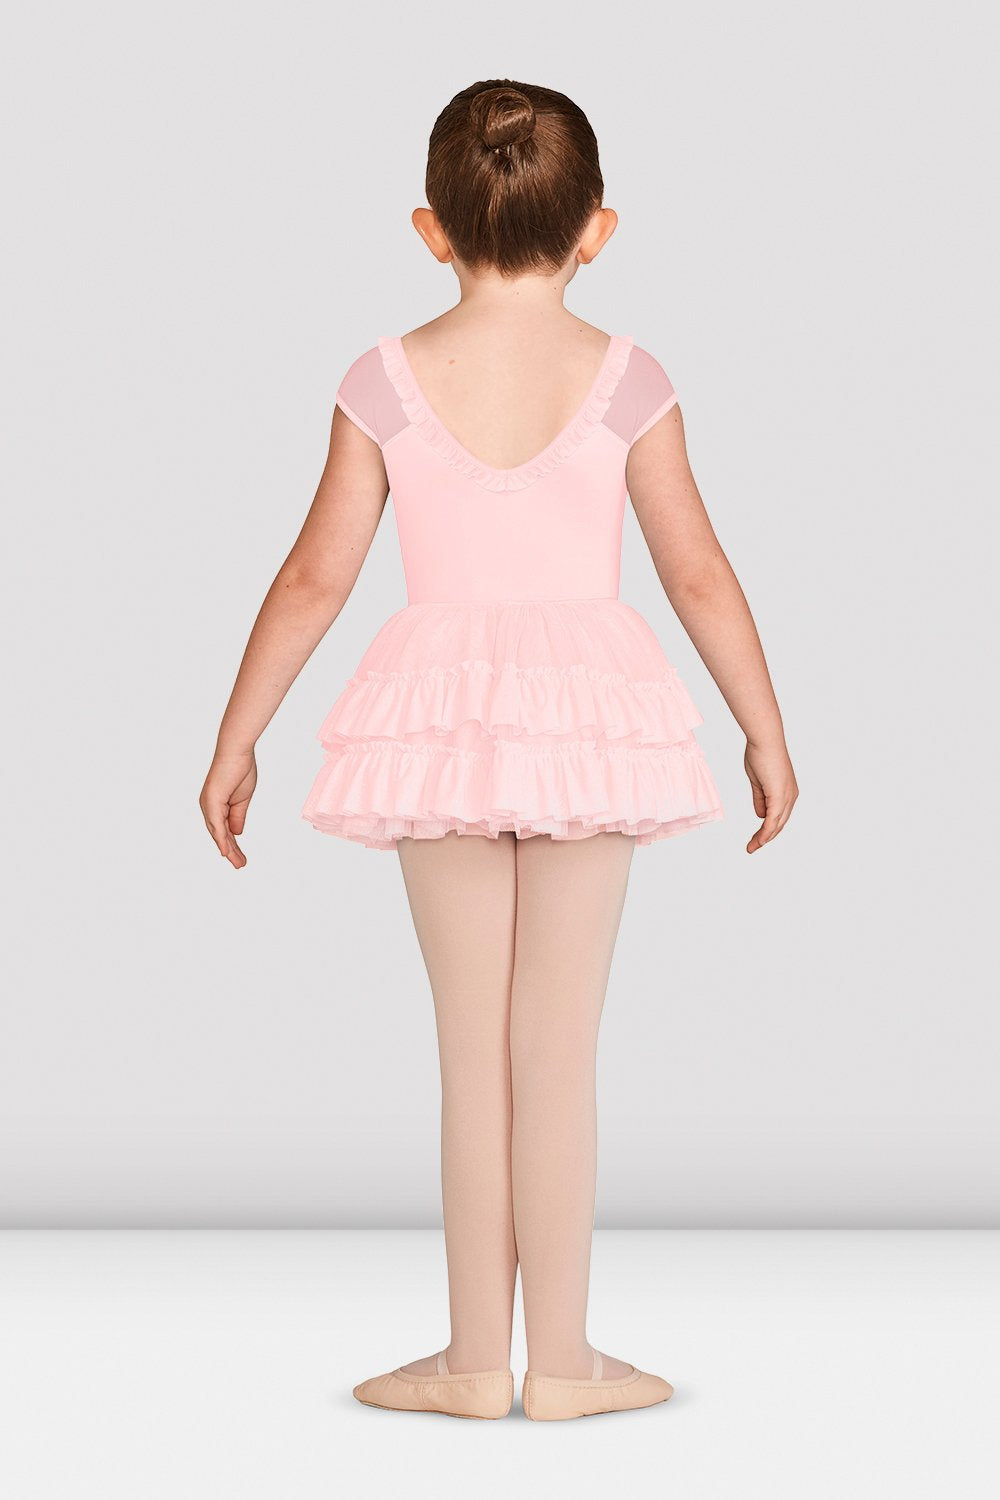 Girls Mirella Vienna Mesh Tutu Skirt - BLOCH US